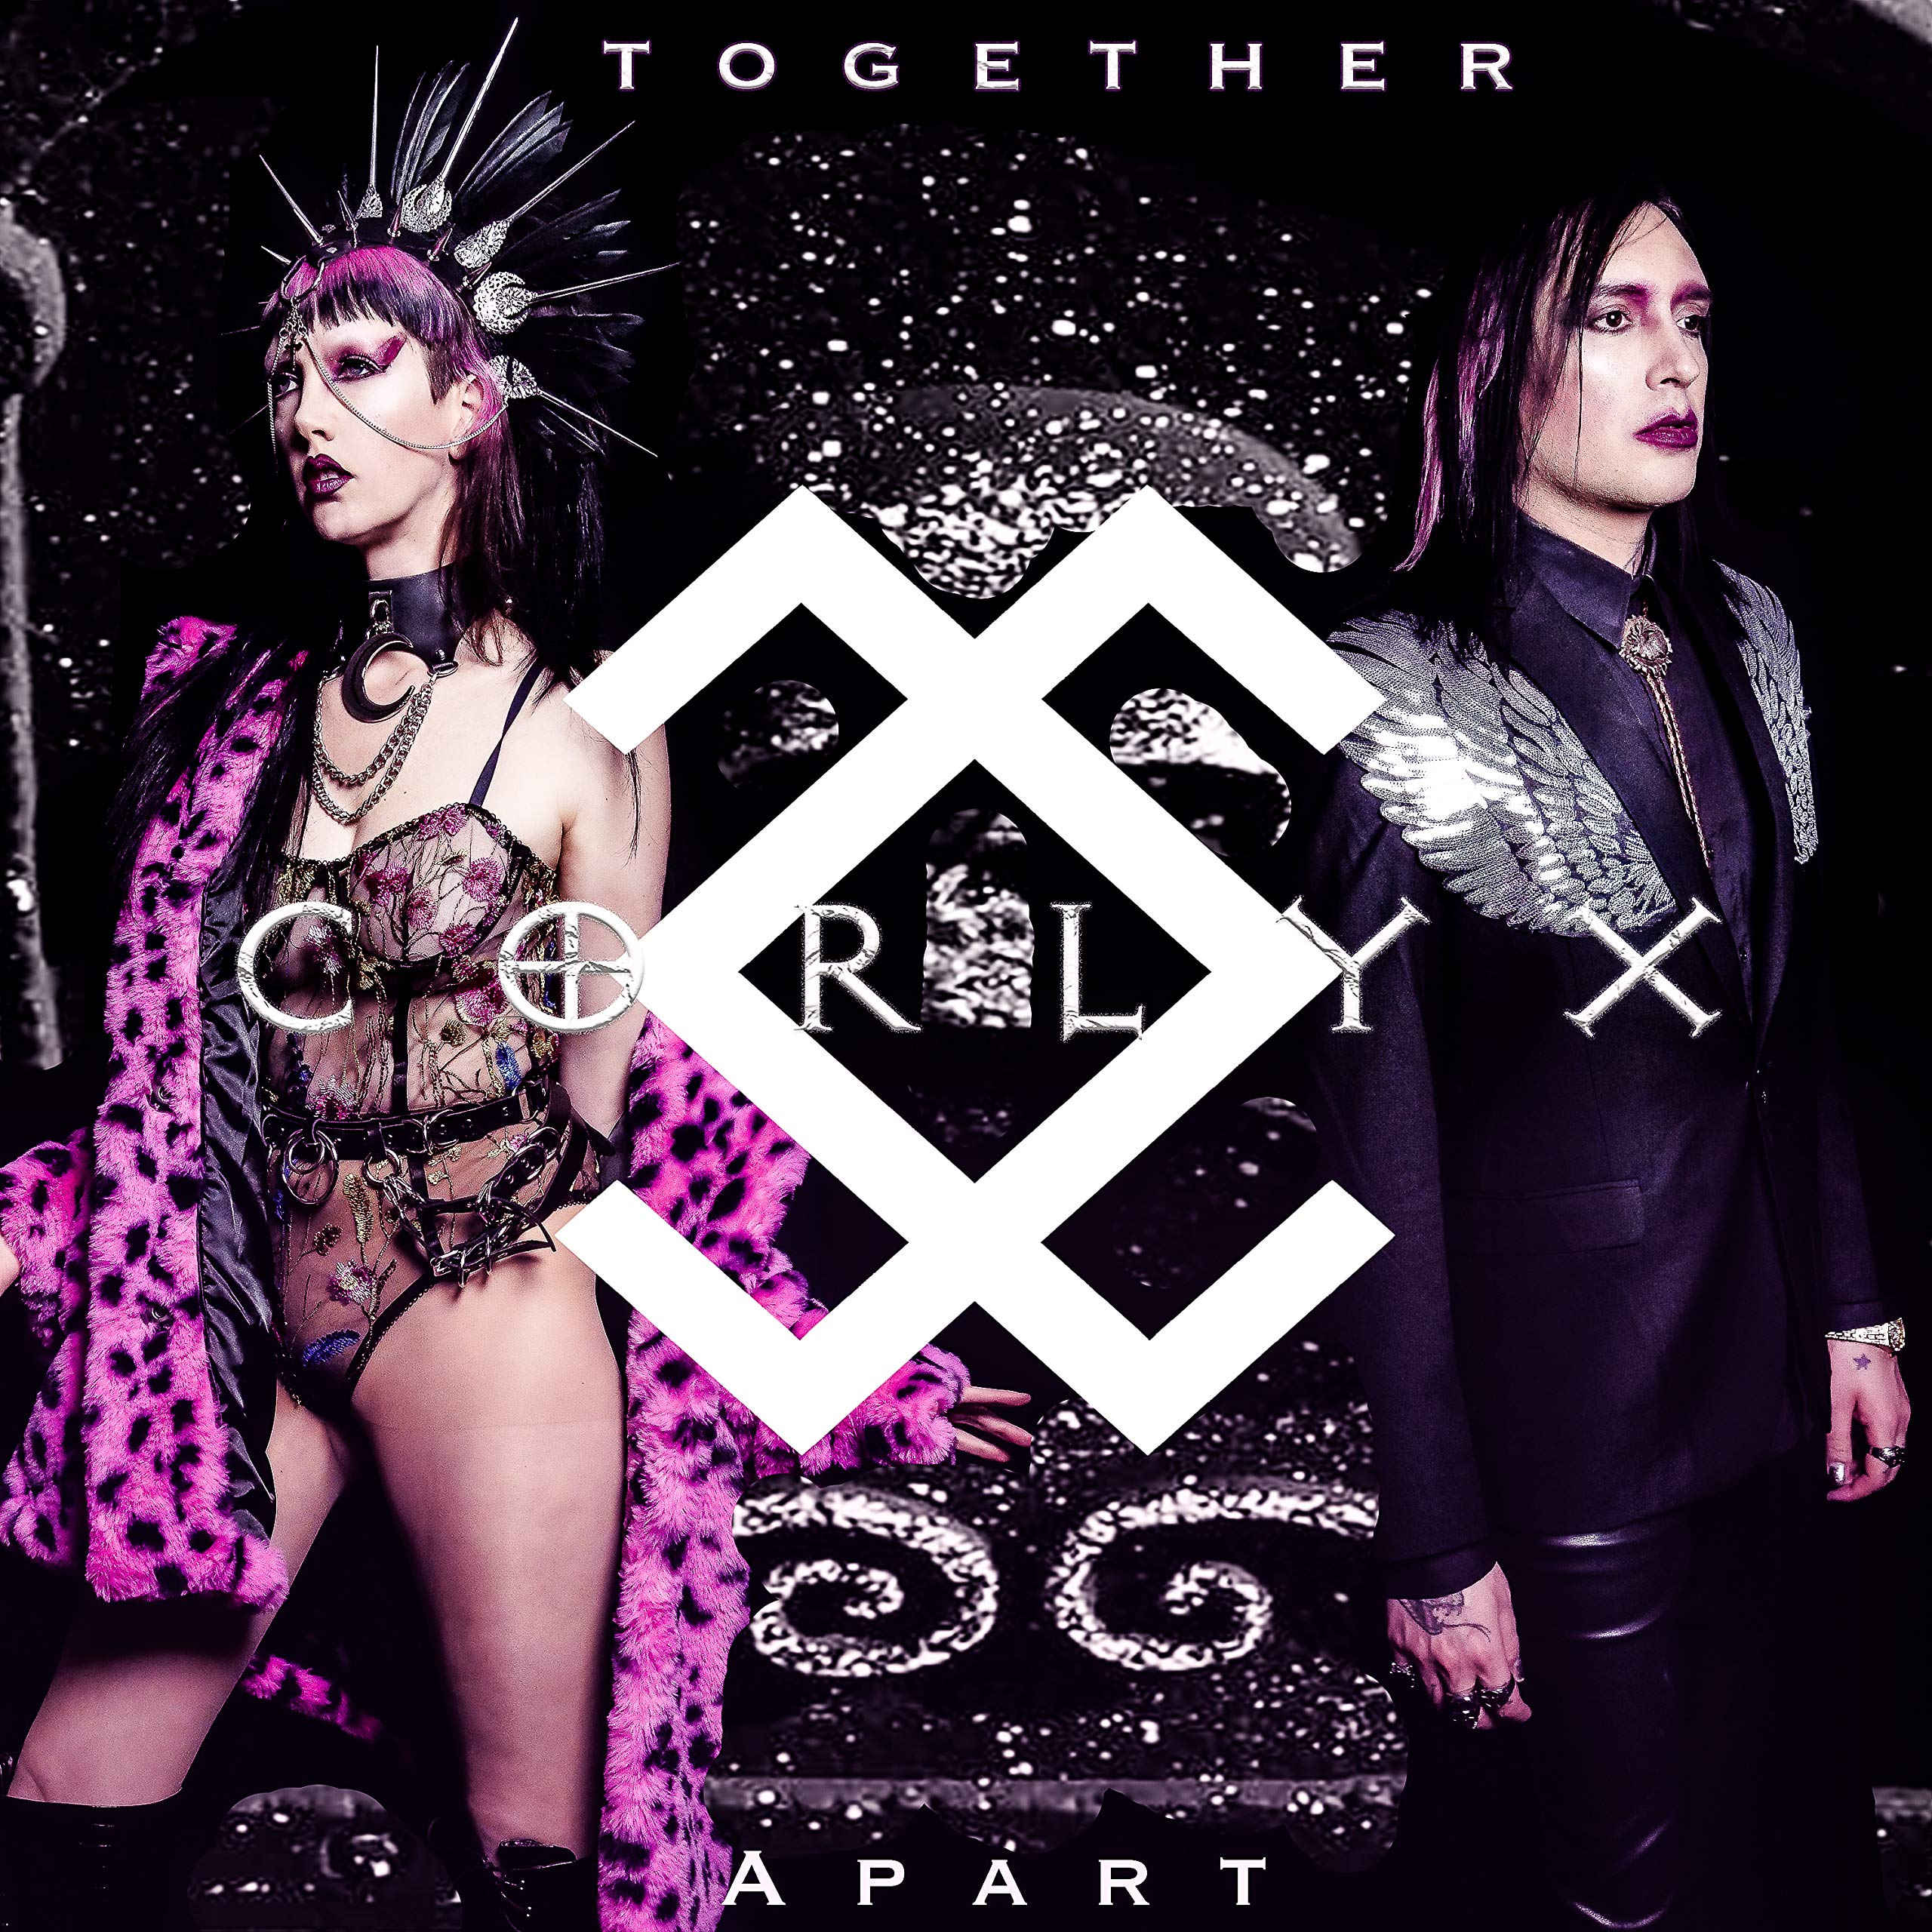 Corlyx - Together Apart (2020) [FLAC] Download